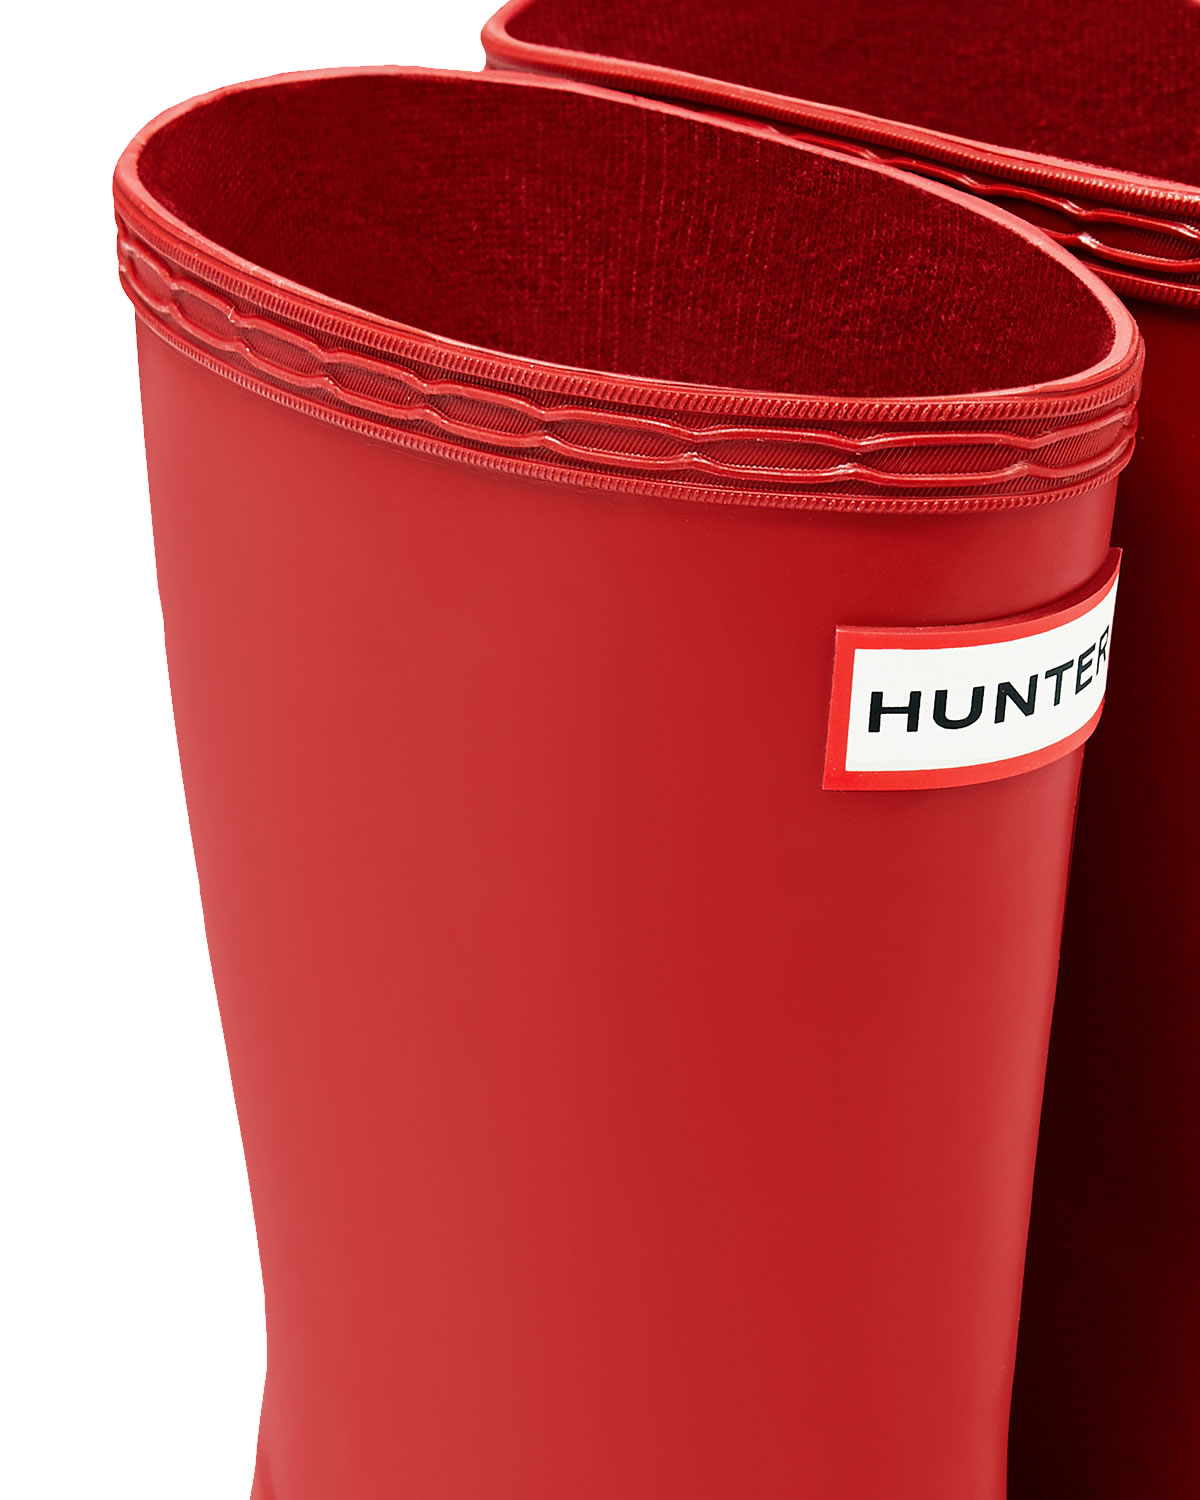 Extra image of Kids First Hunter Wellies - Military Red UK 8